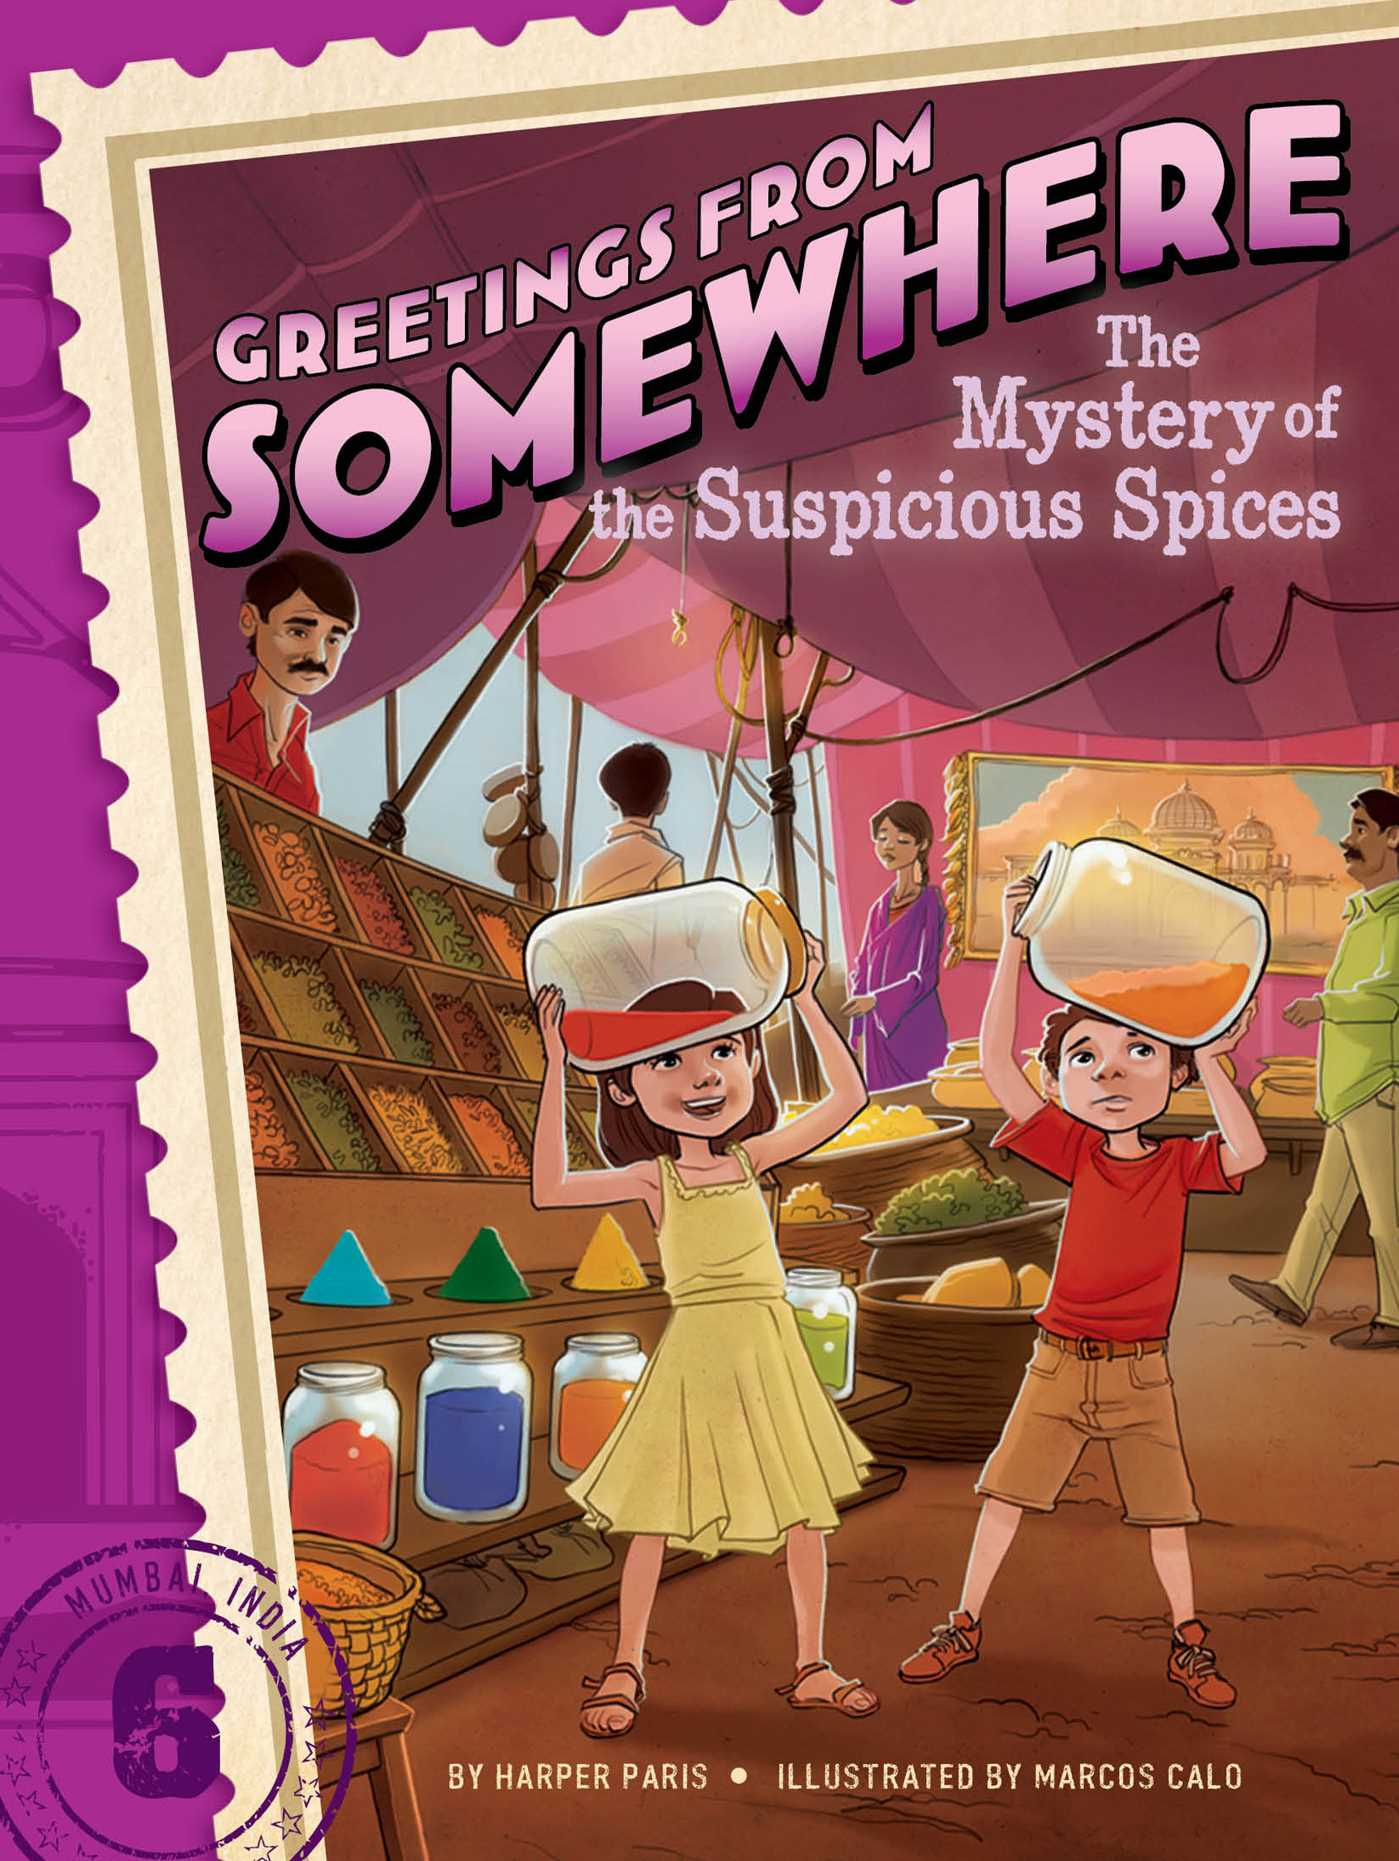 Mystery-of-the-suspicious-spices-9781481414692_hr